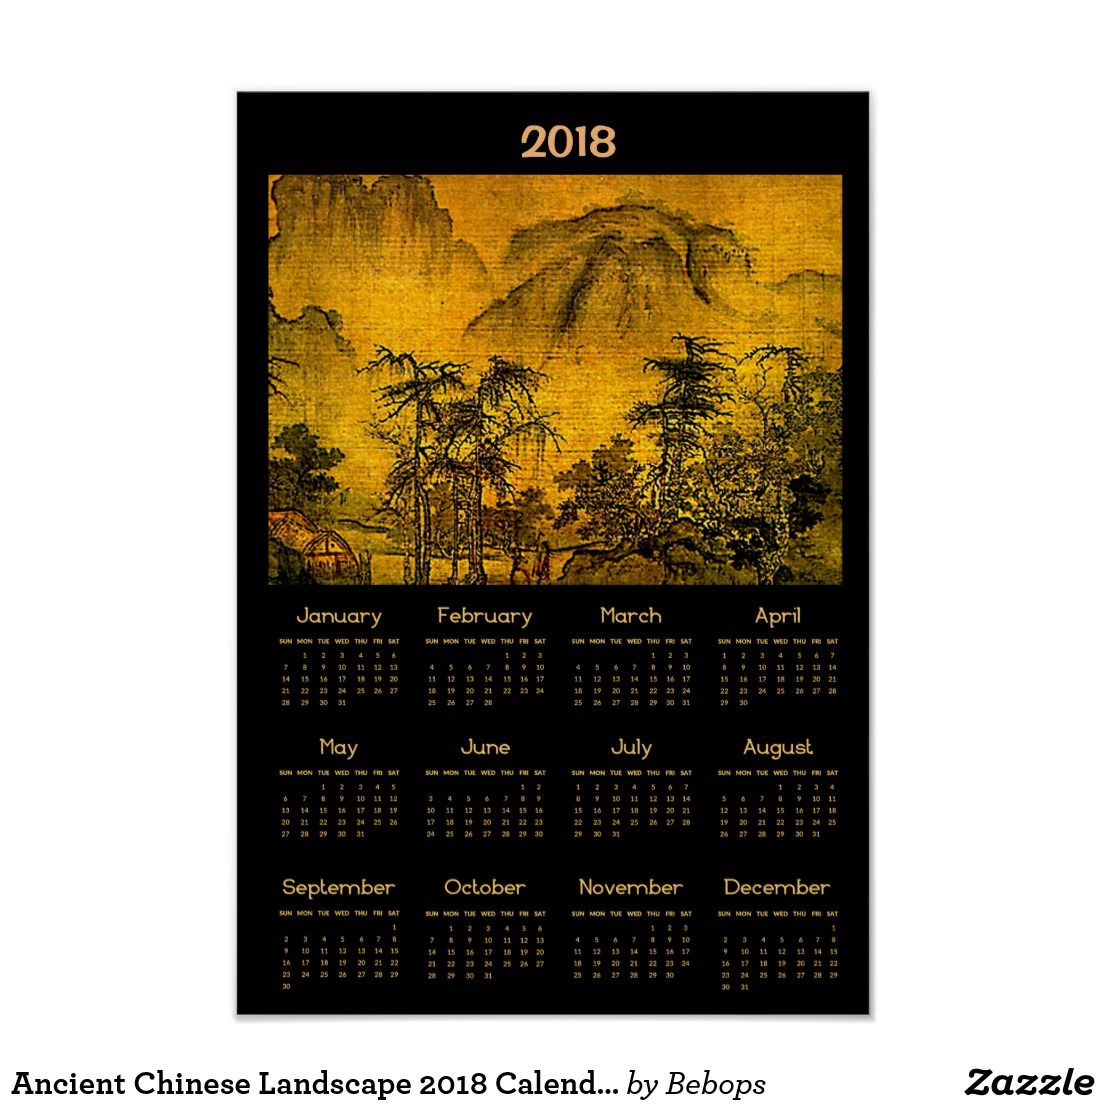 ancient chinese landscape 2018 calendar poster